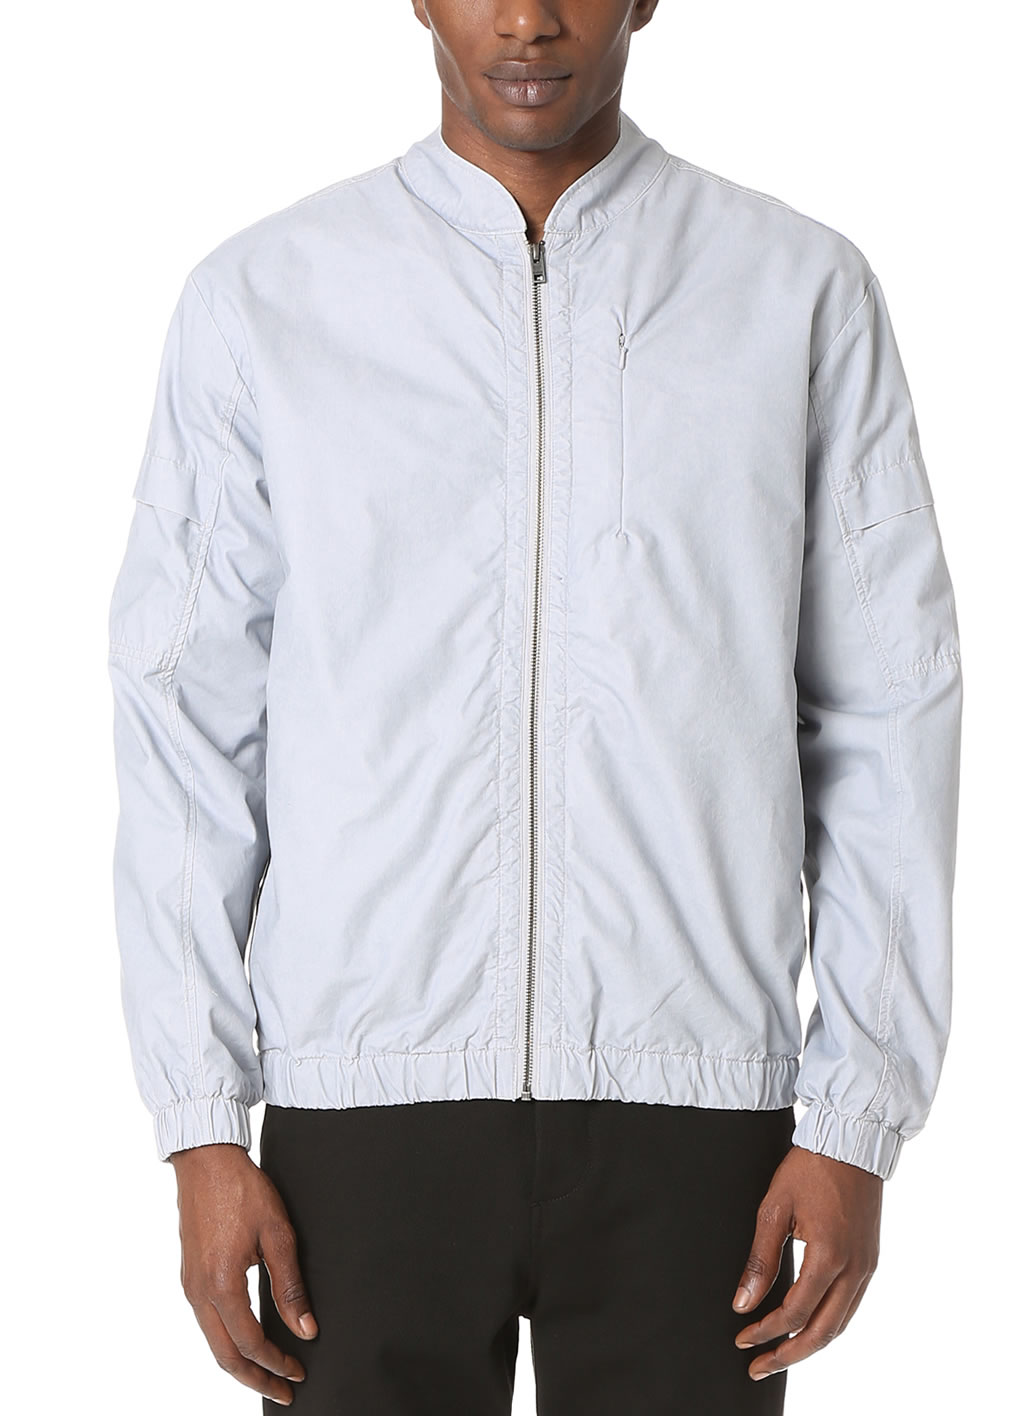 Zanerobe Trail Bomber Jacket For Men